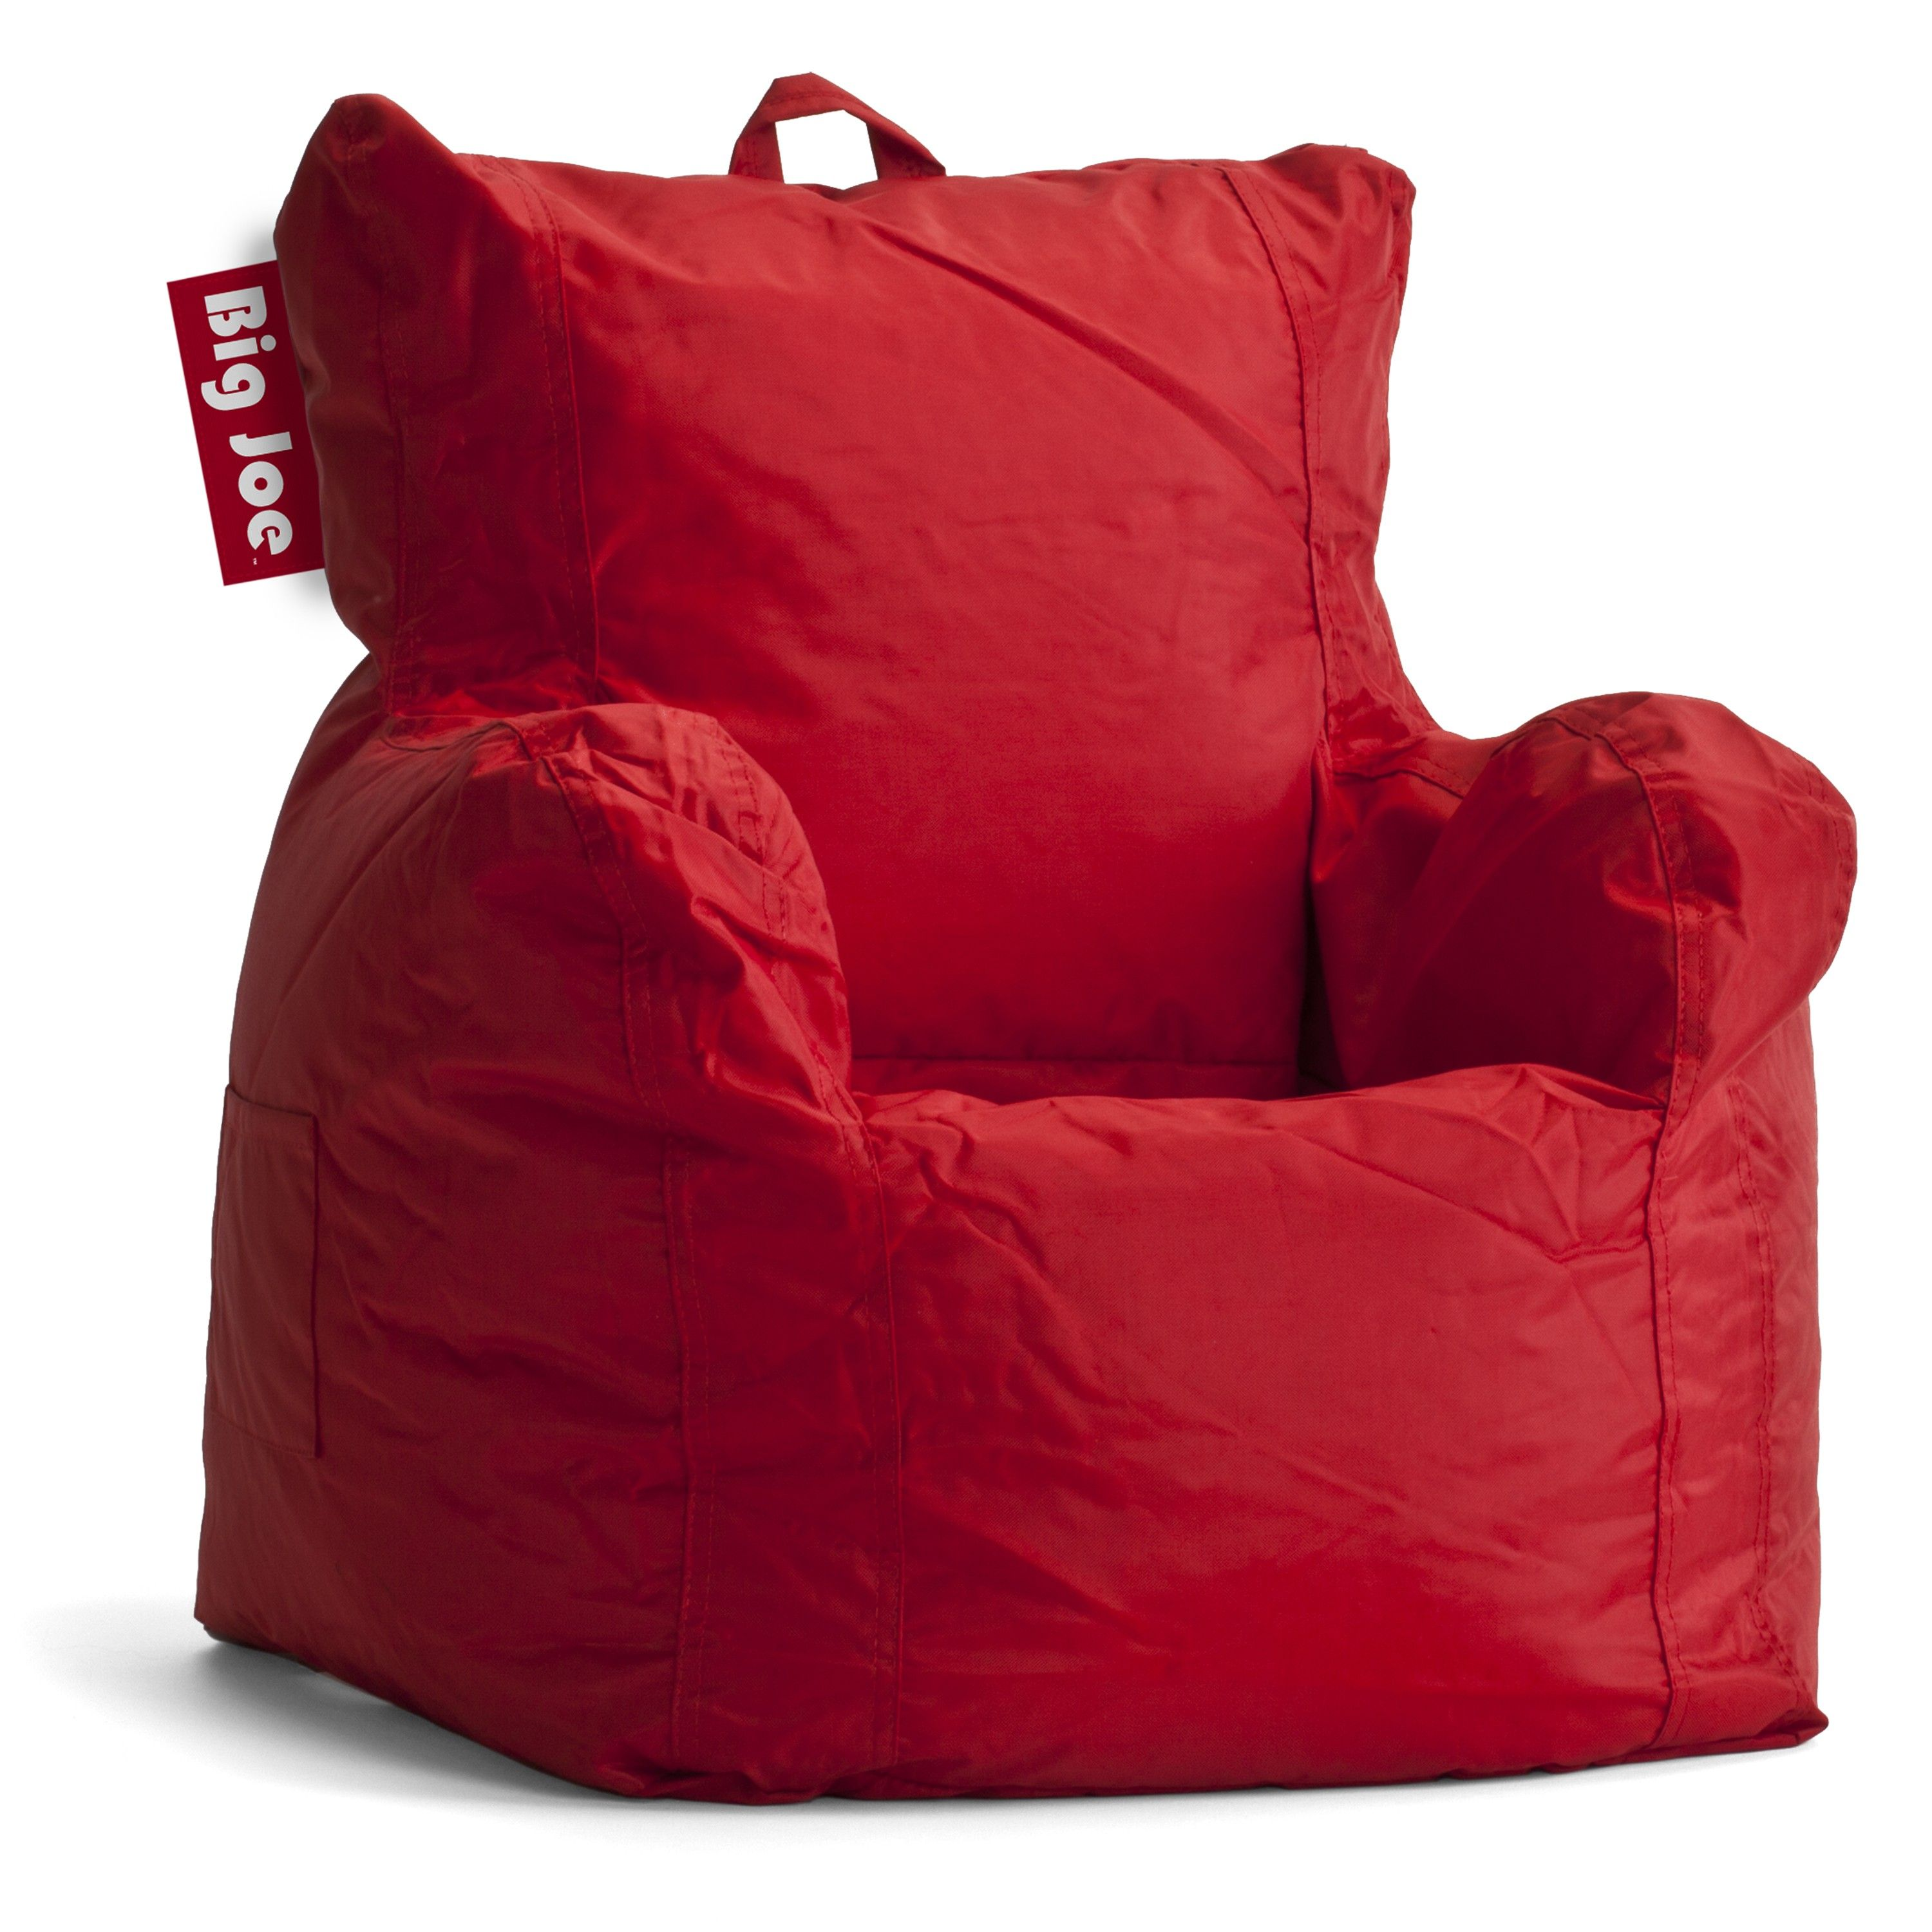 This Tough Big Joe Cuddle Bean Bag Chair Is The Solution To So Many Needs:  A Kidsu0027 Chair Perfectly Sized For Your Child; A Fun Piece Of Furniture That  Can ...